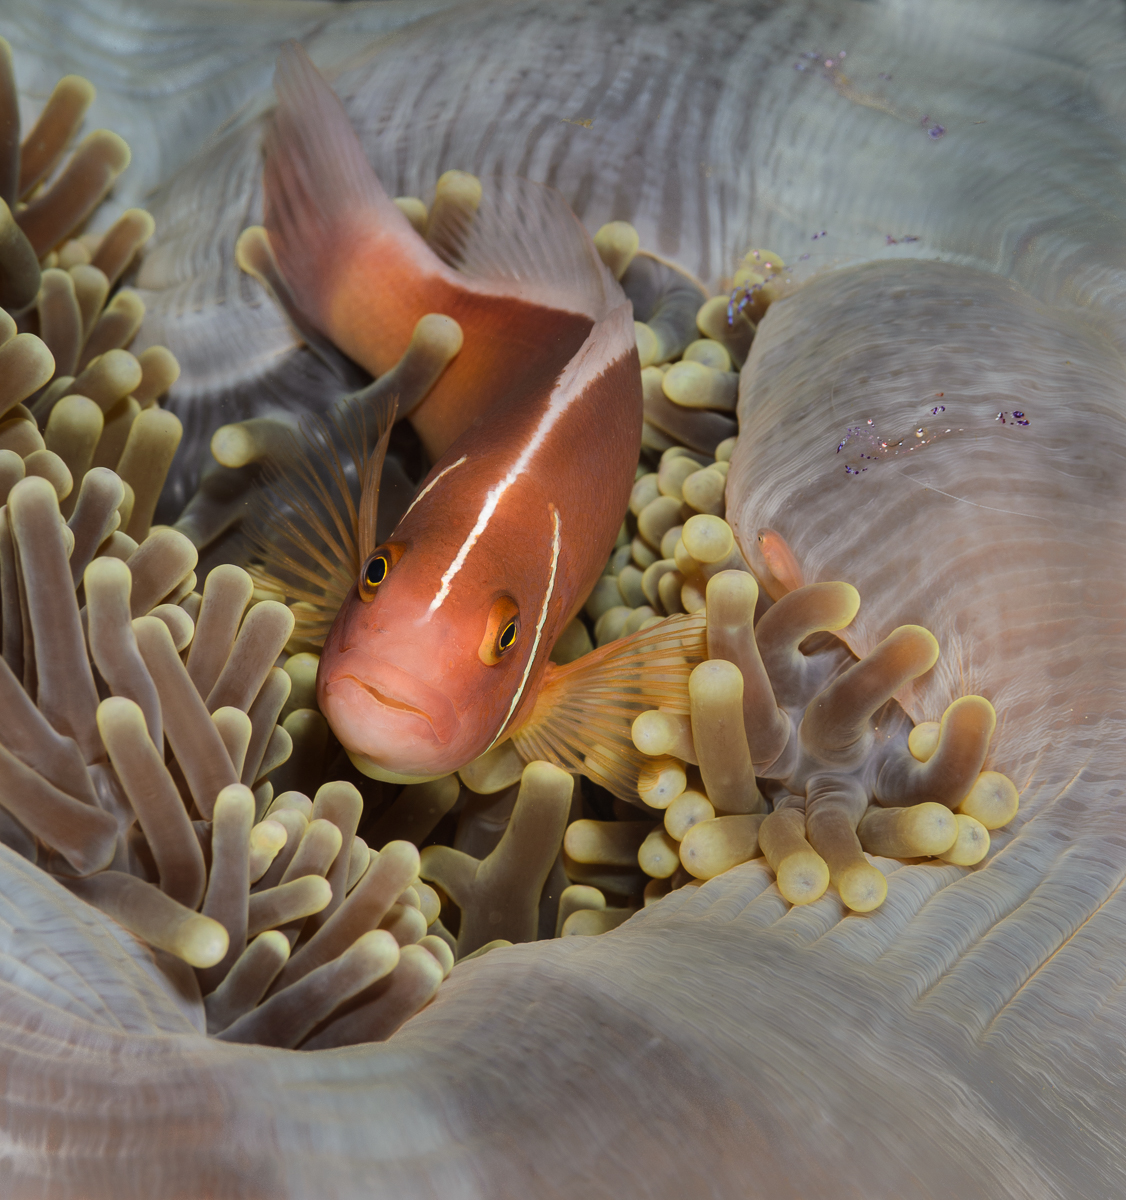 Anemone Fish in Anemone, Philippines